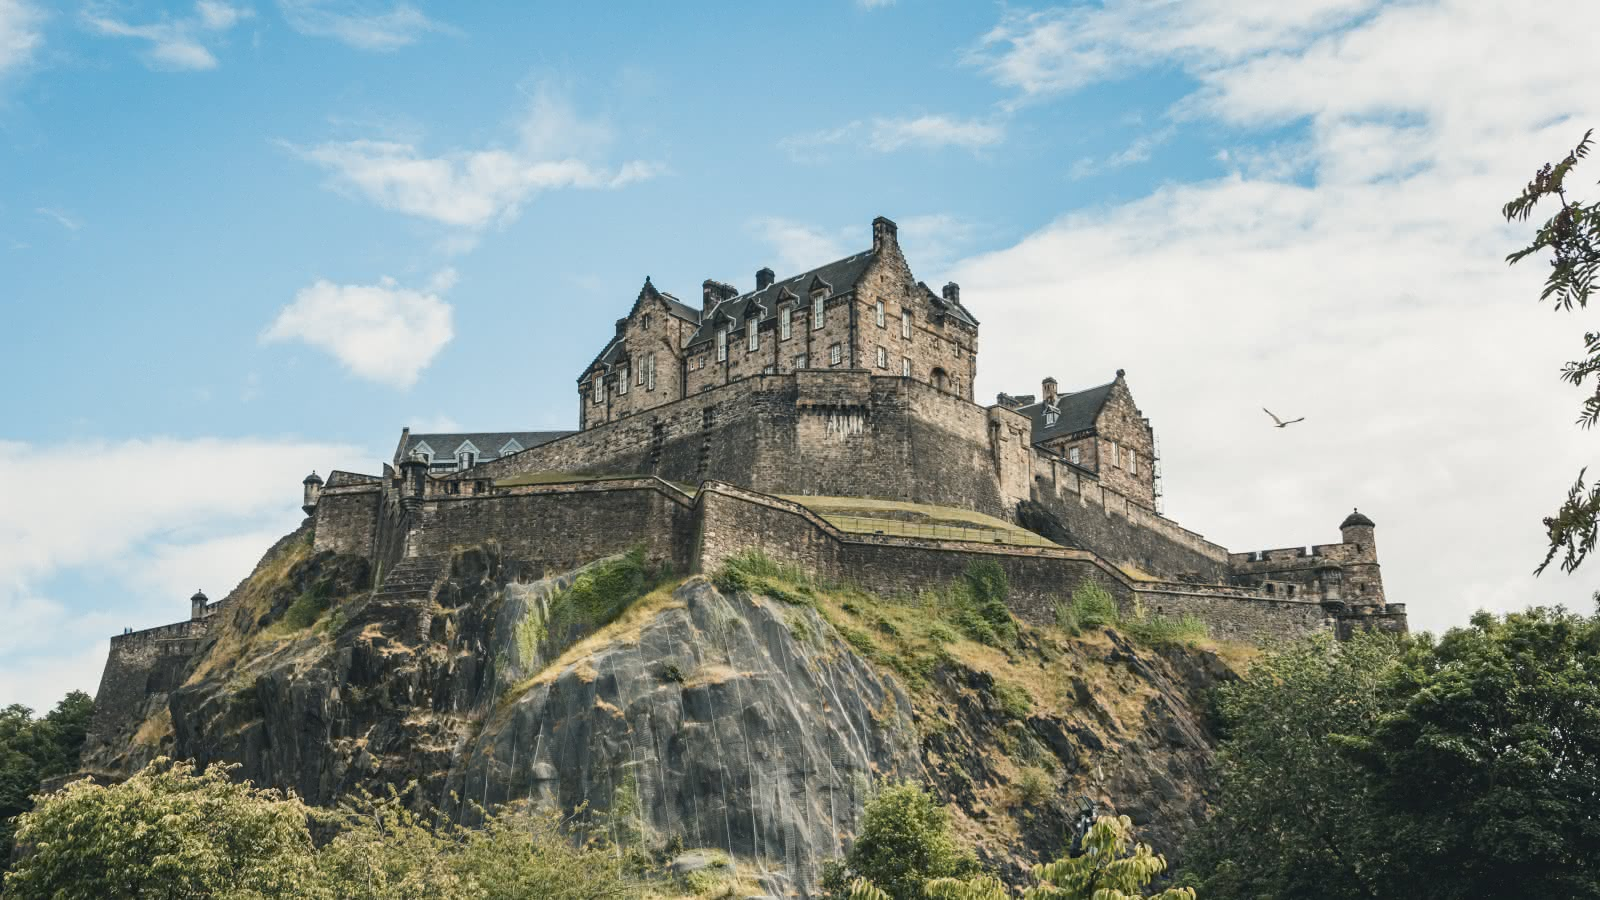 What makes Edinburgh Castle so important to Scotland?